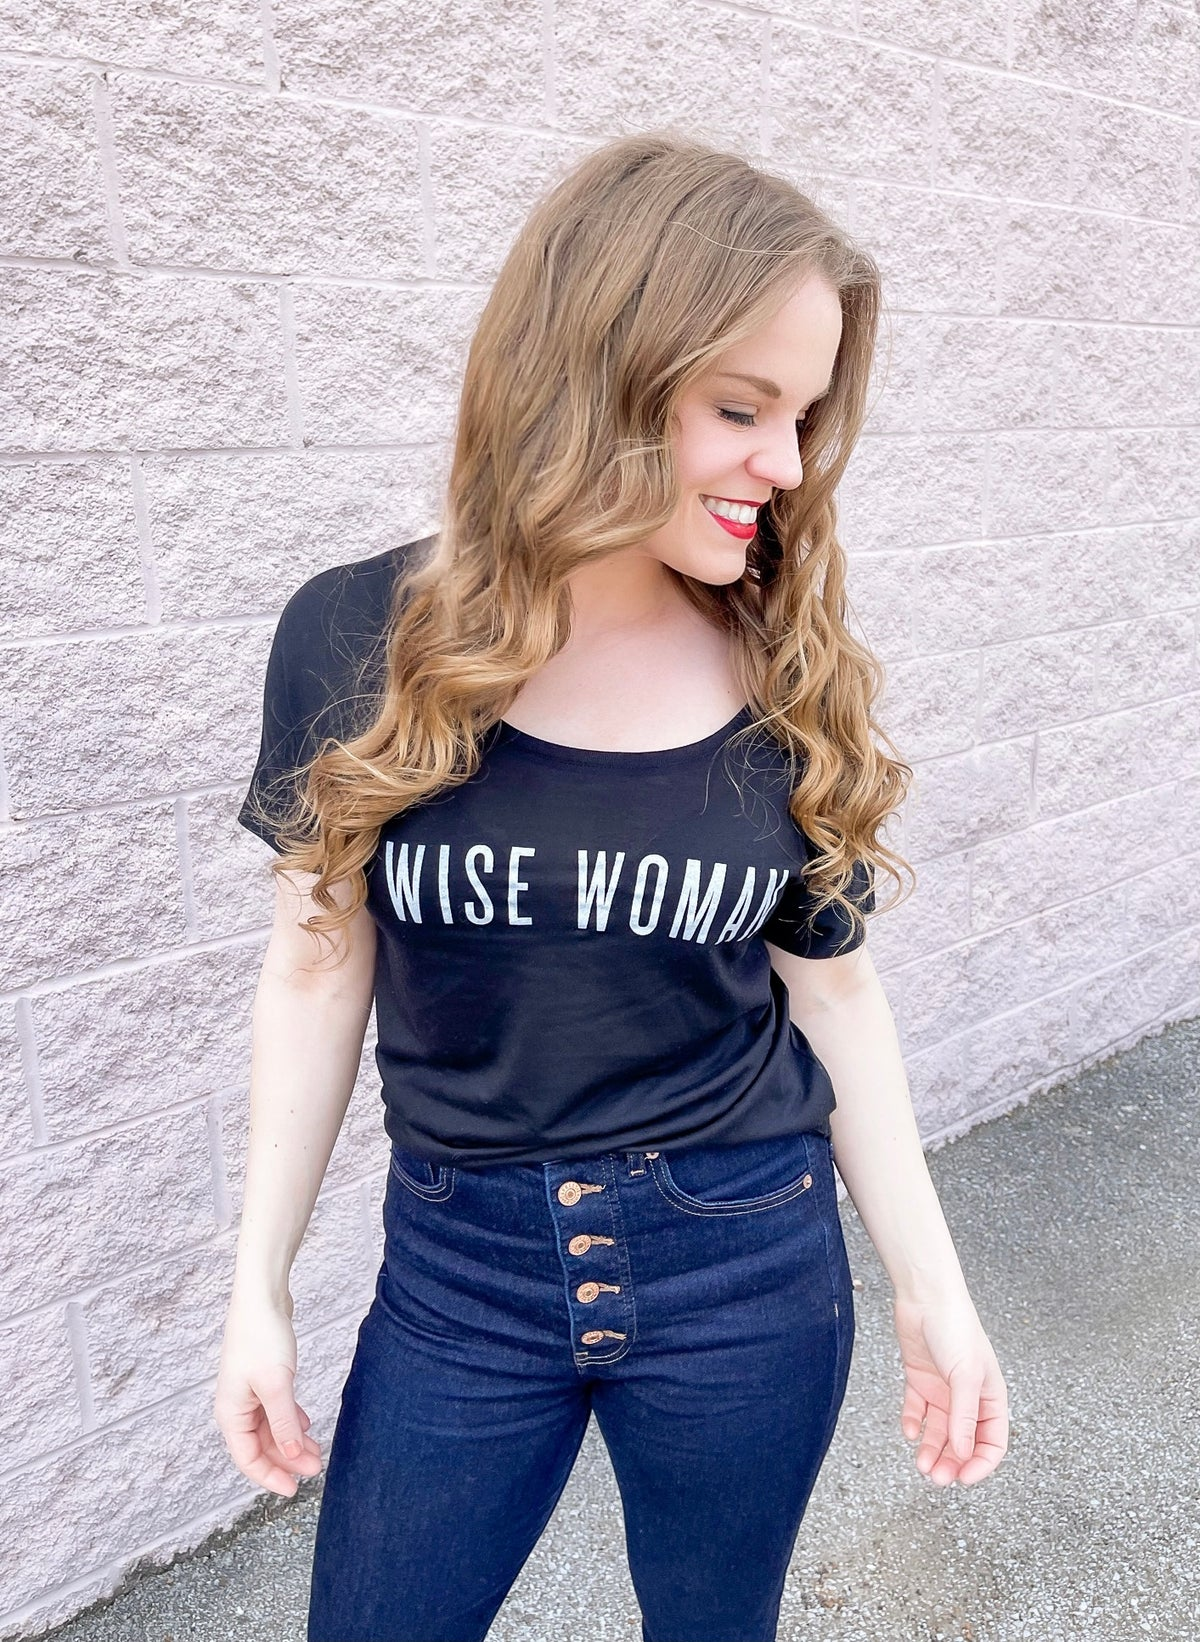 Wise Woman T-shirt PRE-ORDER